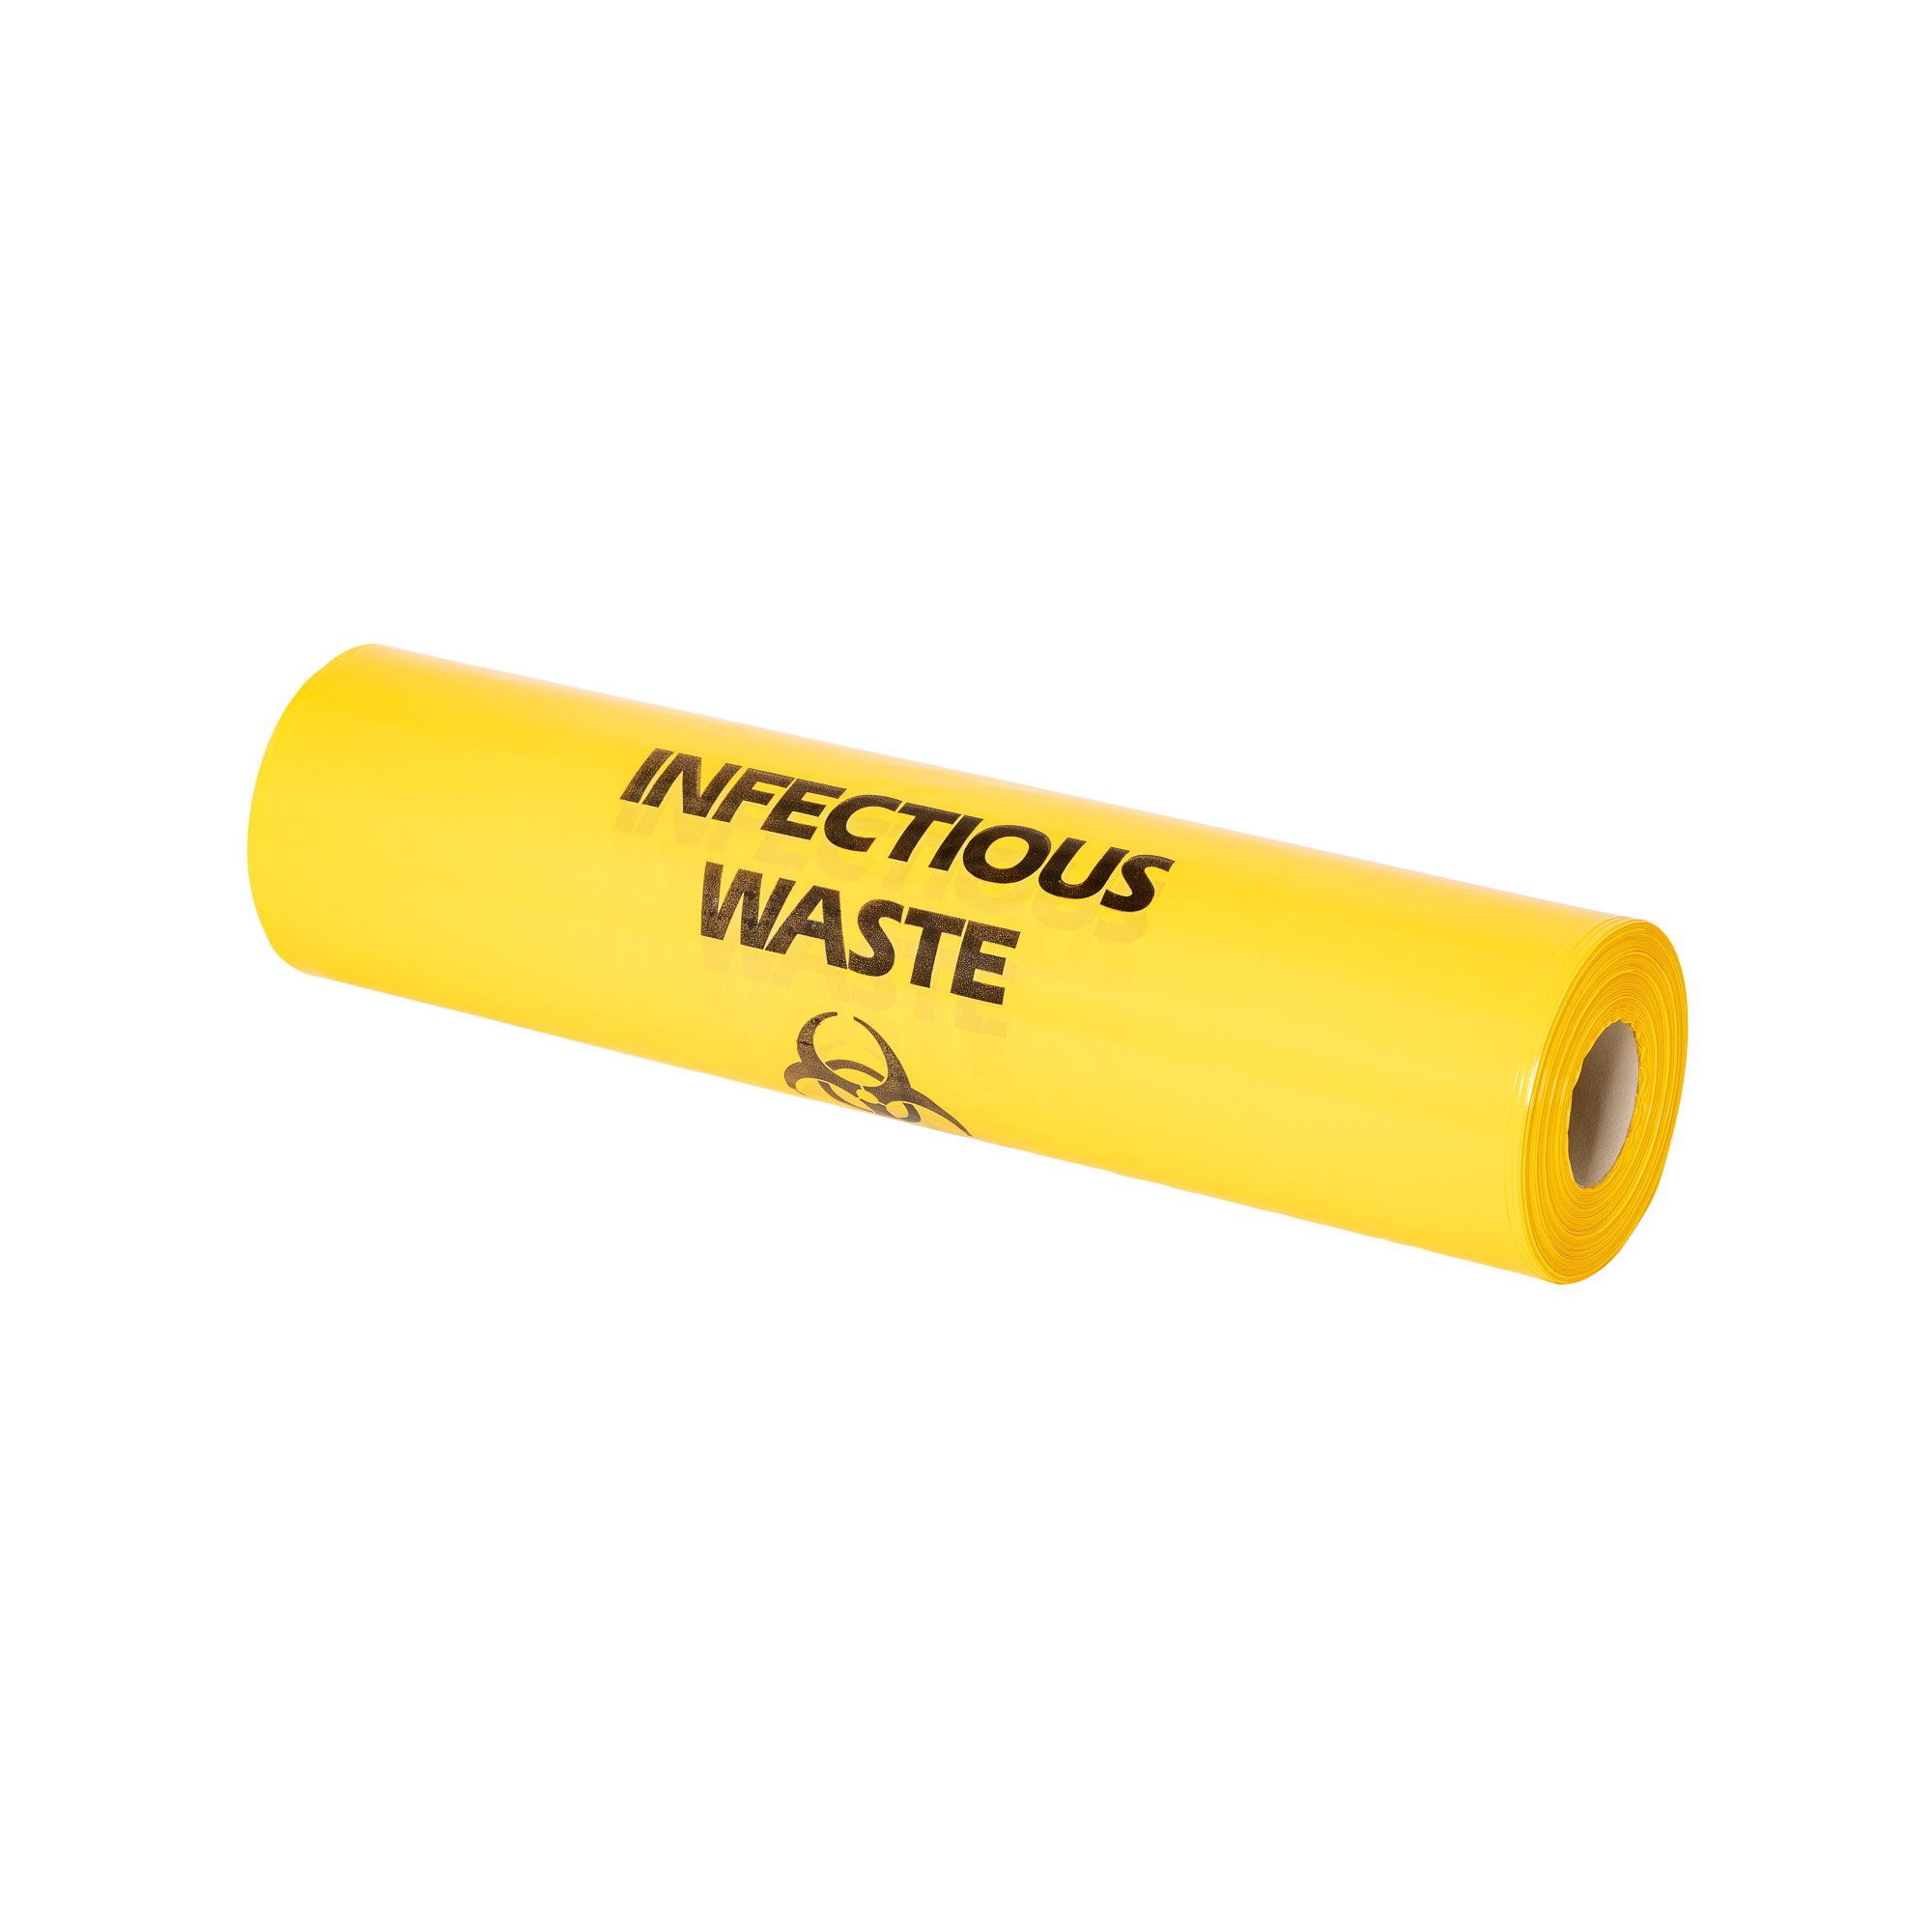 Pro Clean Yellow Infections Waste roll - Product photography sample